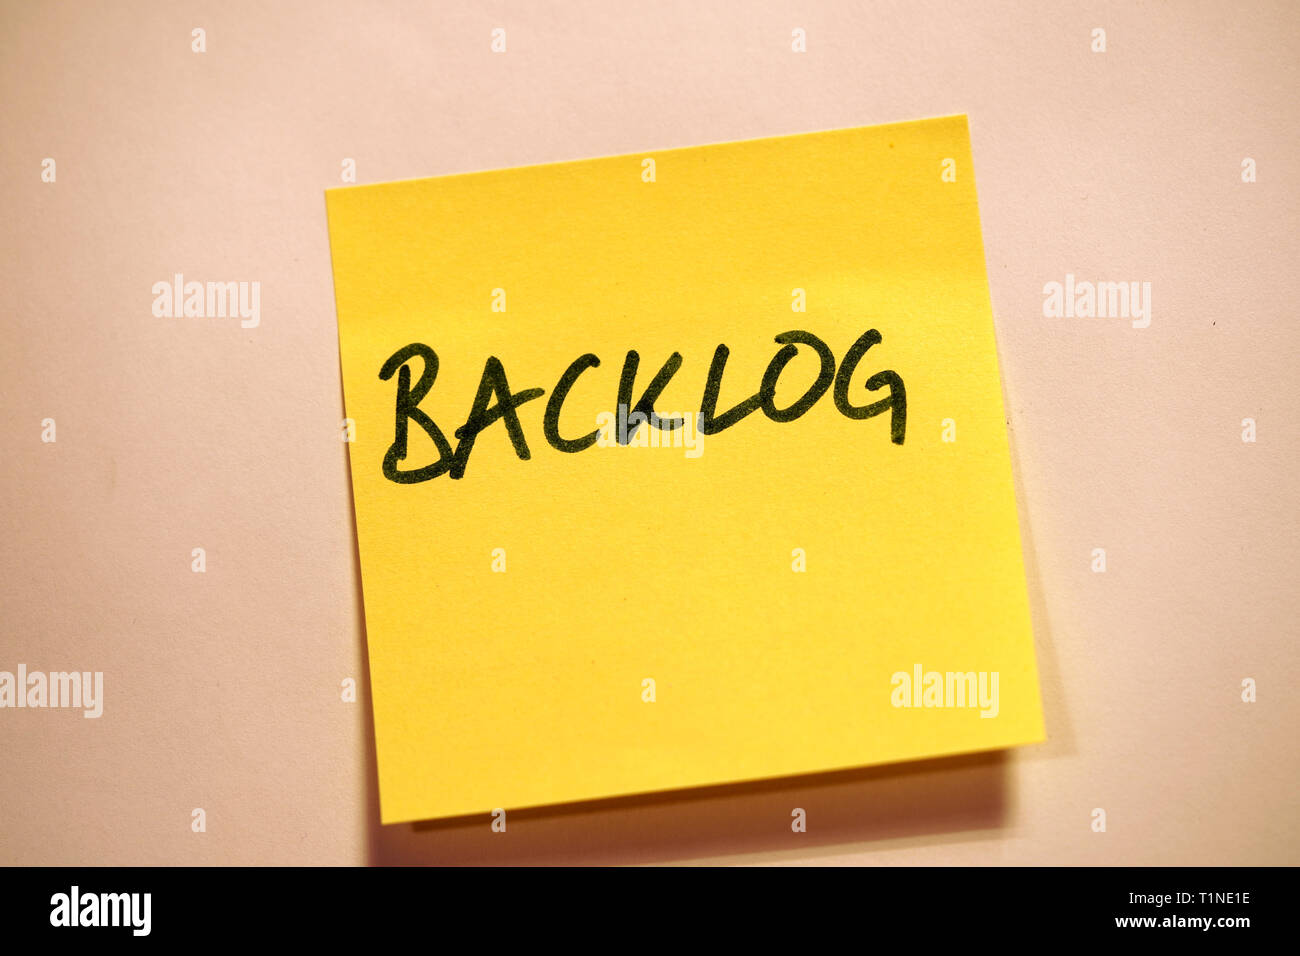 Yellow Sticky Note Scrum Agile Backlog - Stock Image